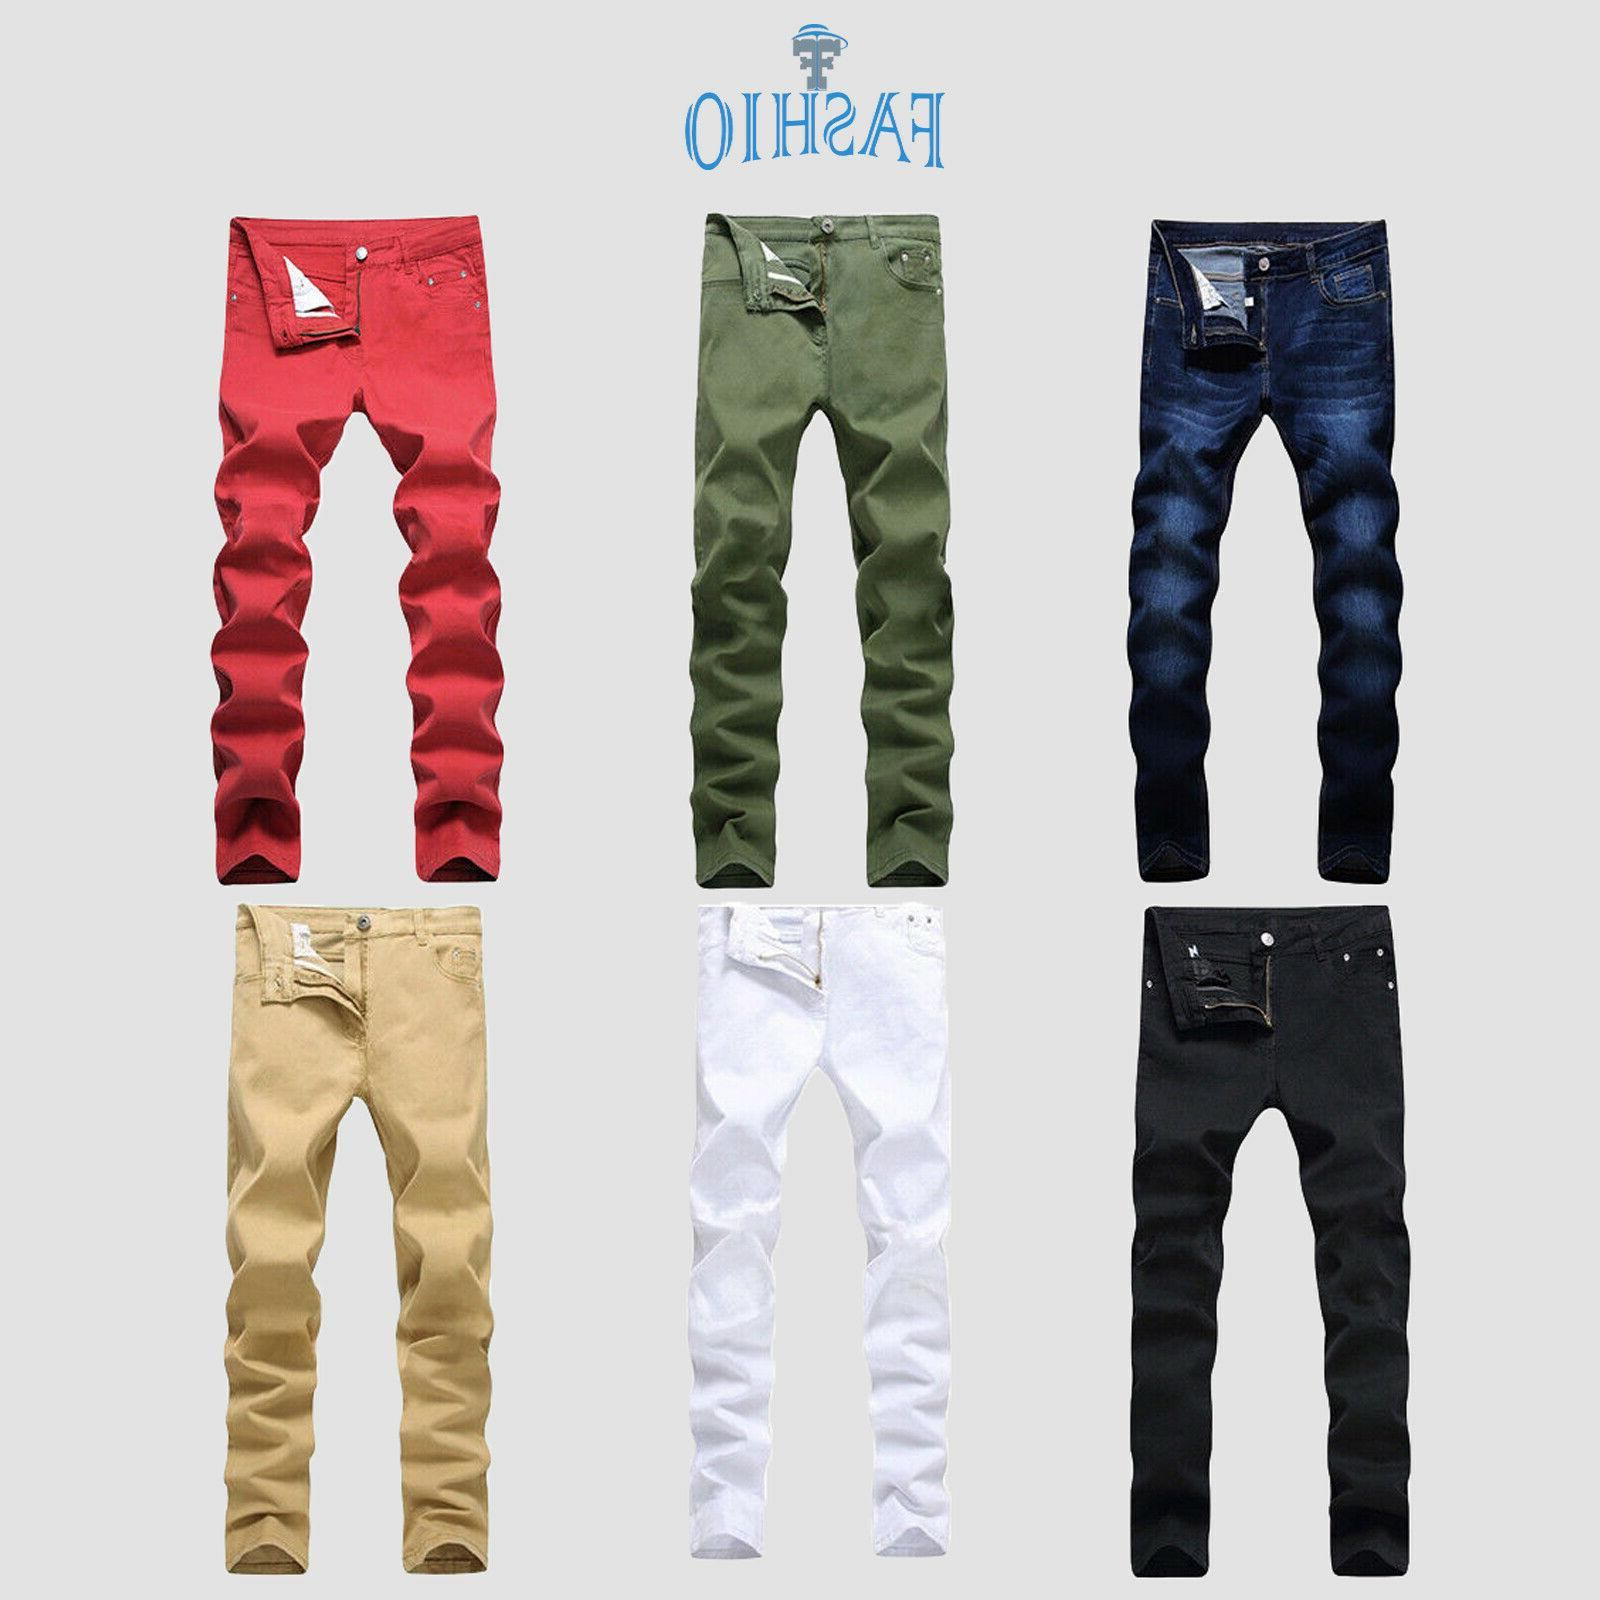 men s stretchable fitted denim fashion jeans